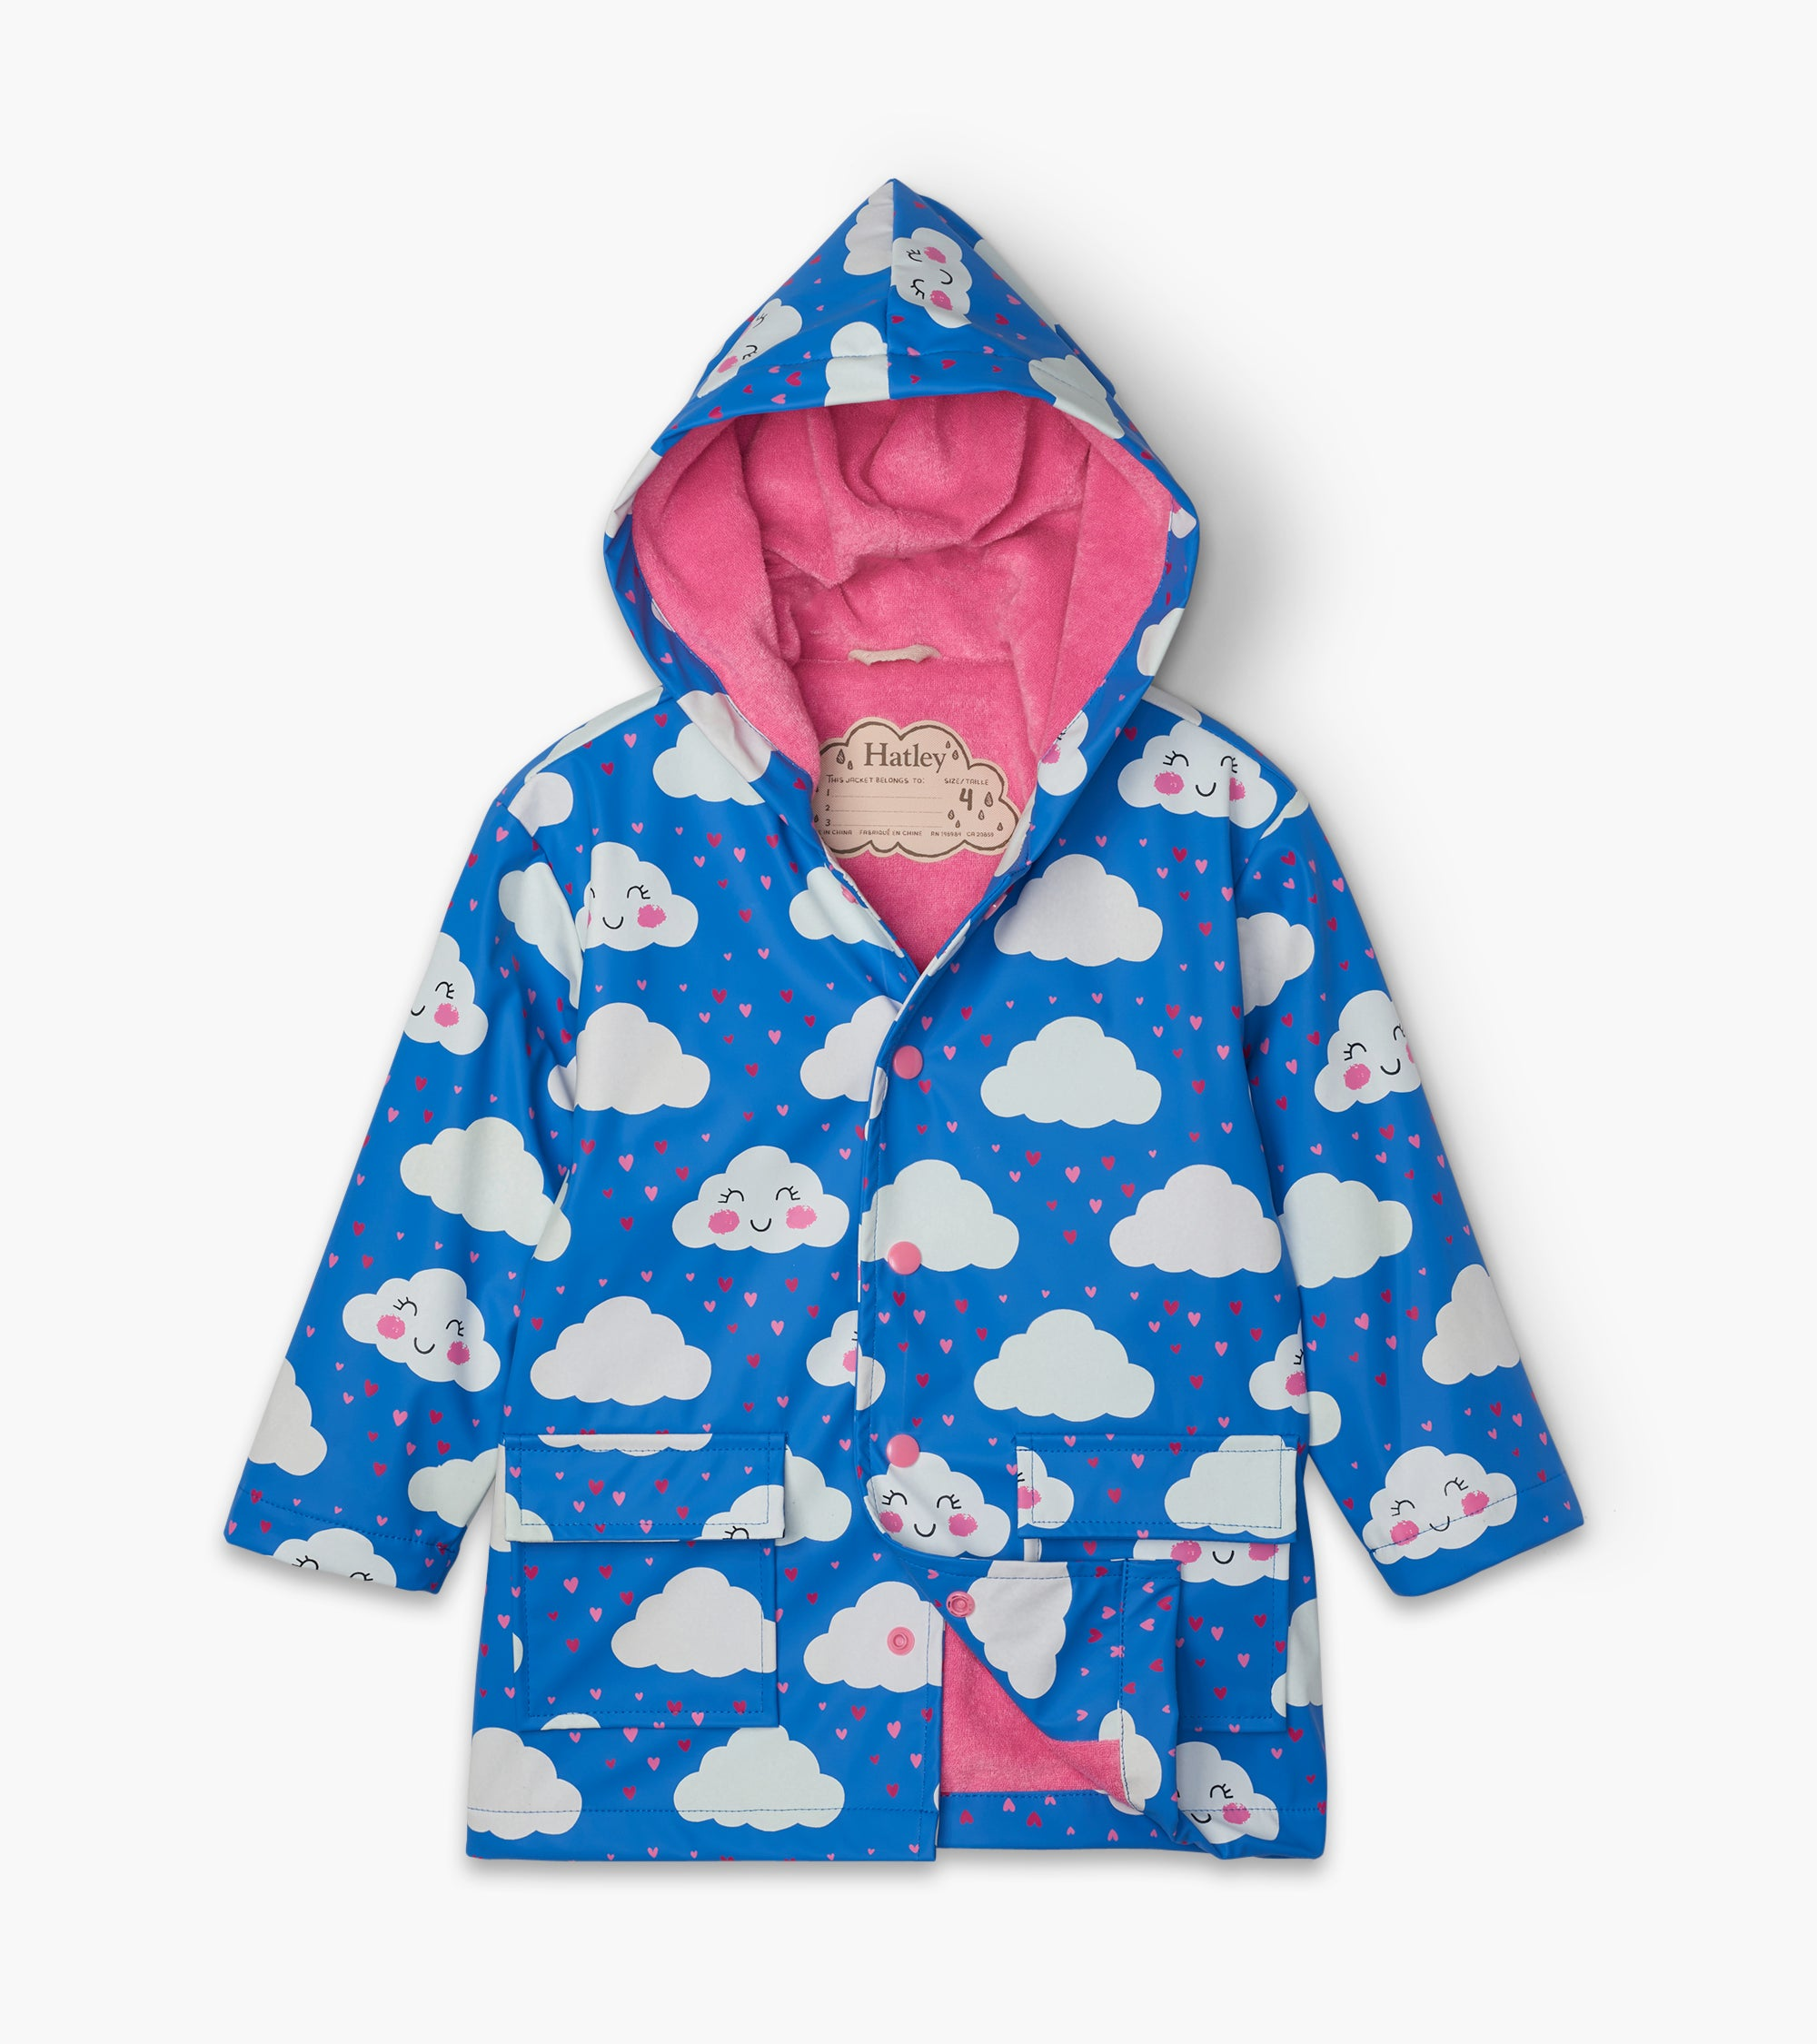 Hatley Cheerful Clouds Colour Changing Raincoat - The Mango Tree